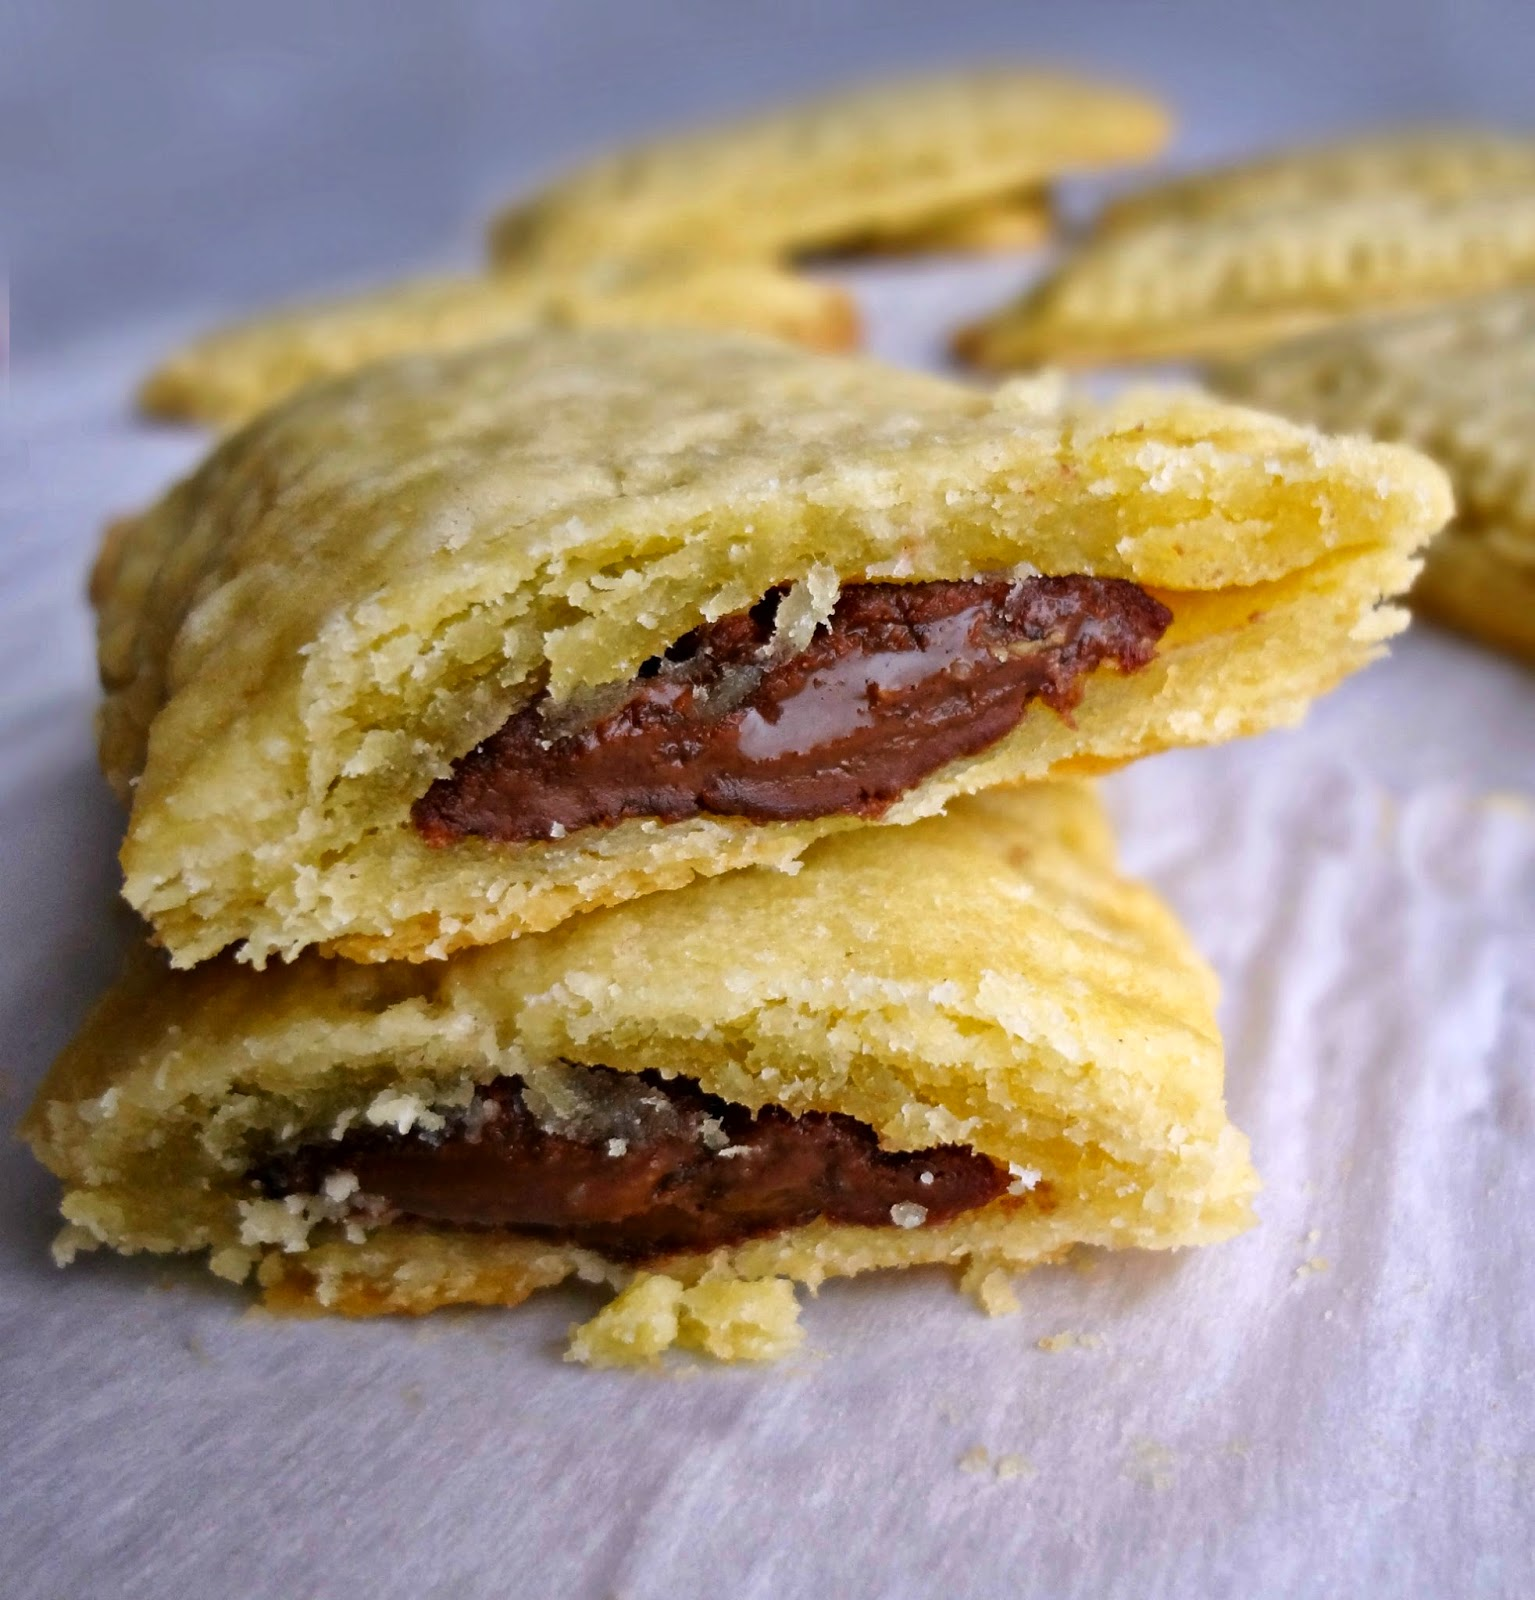 Chocolate Peanut Butter Breakfast Pastries